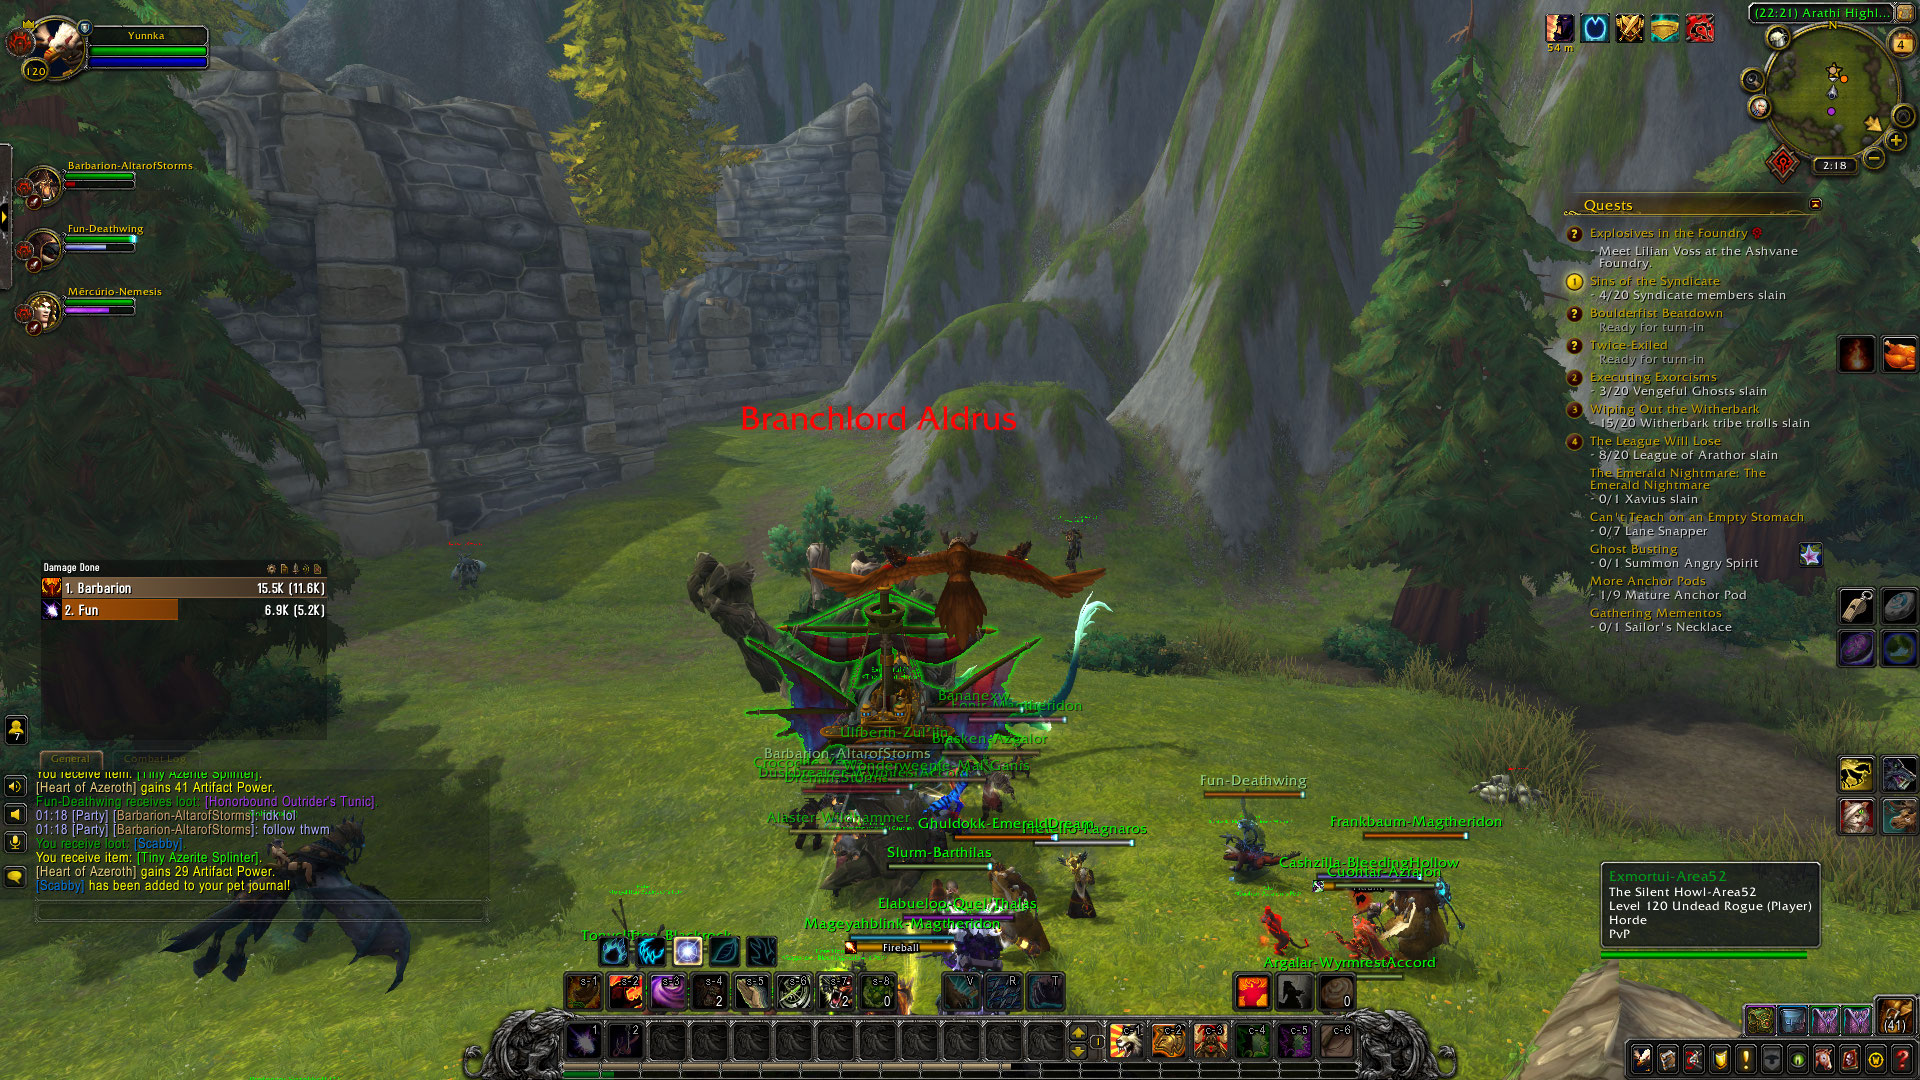 A magic moment when I ran into a ton of people questing and traveled with them for about 20 minutes.